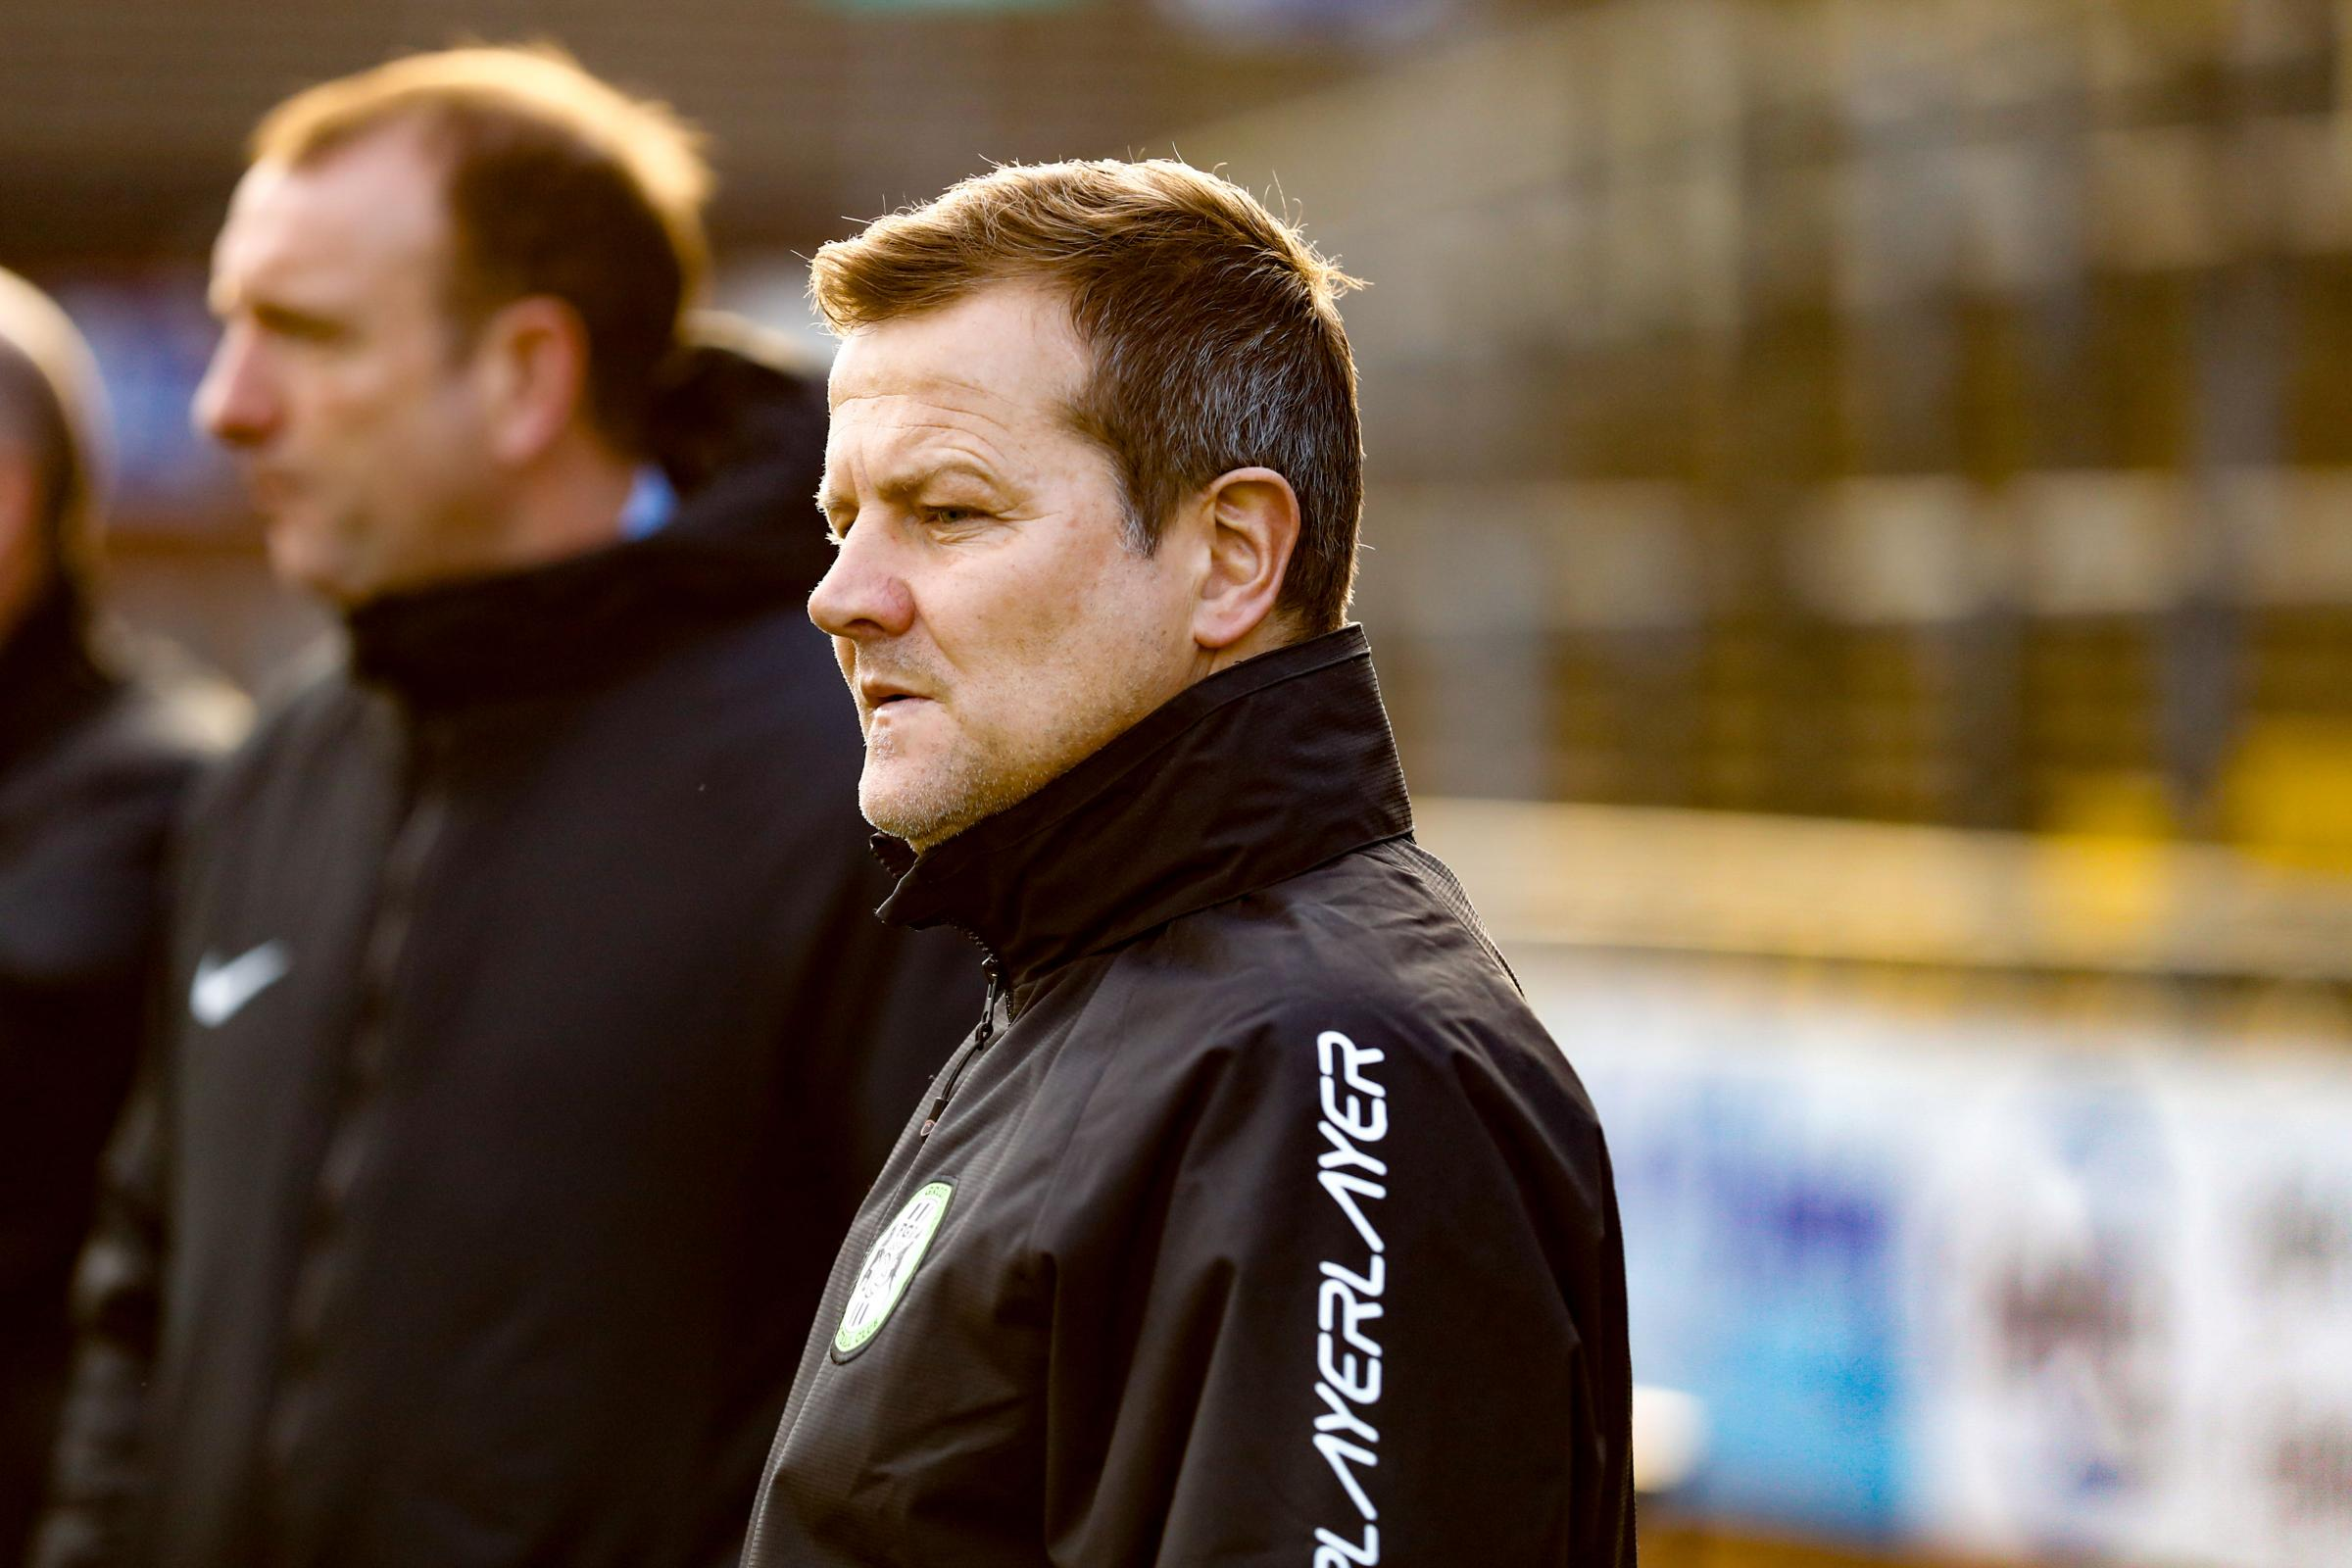 Mark Cooper discusses team selection